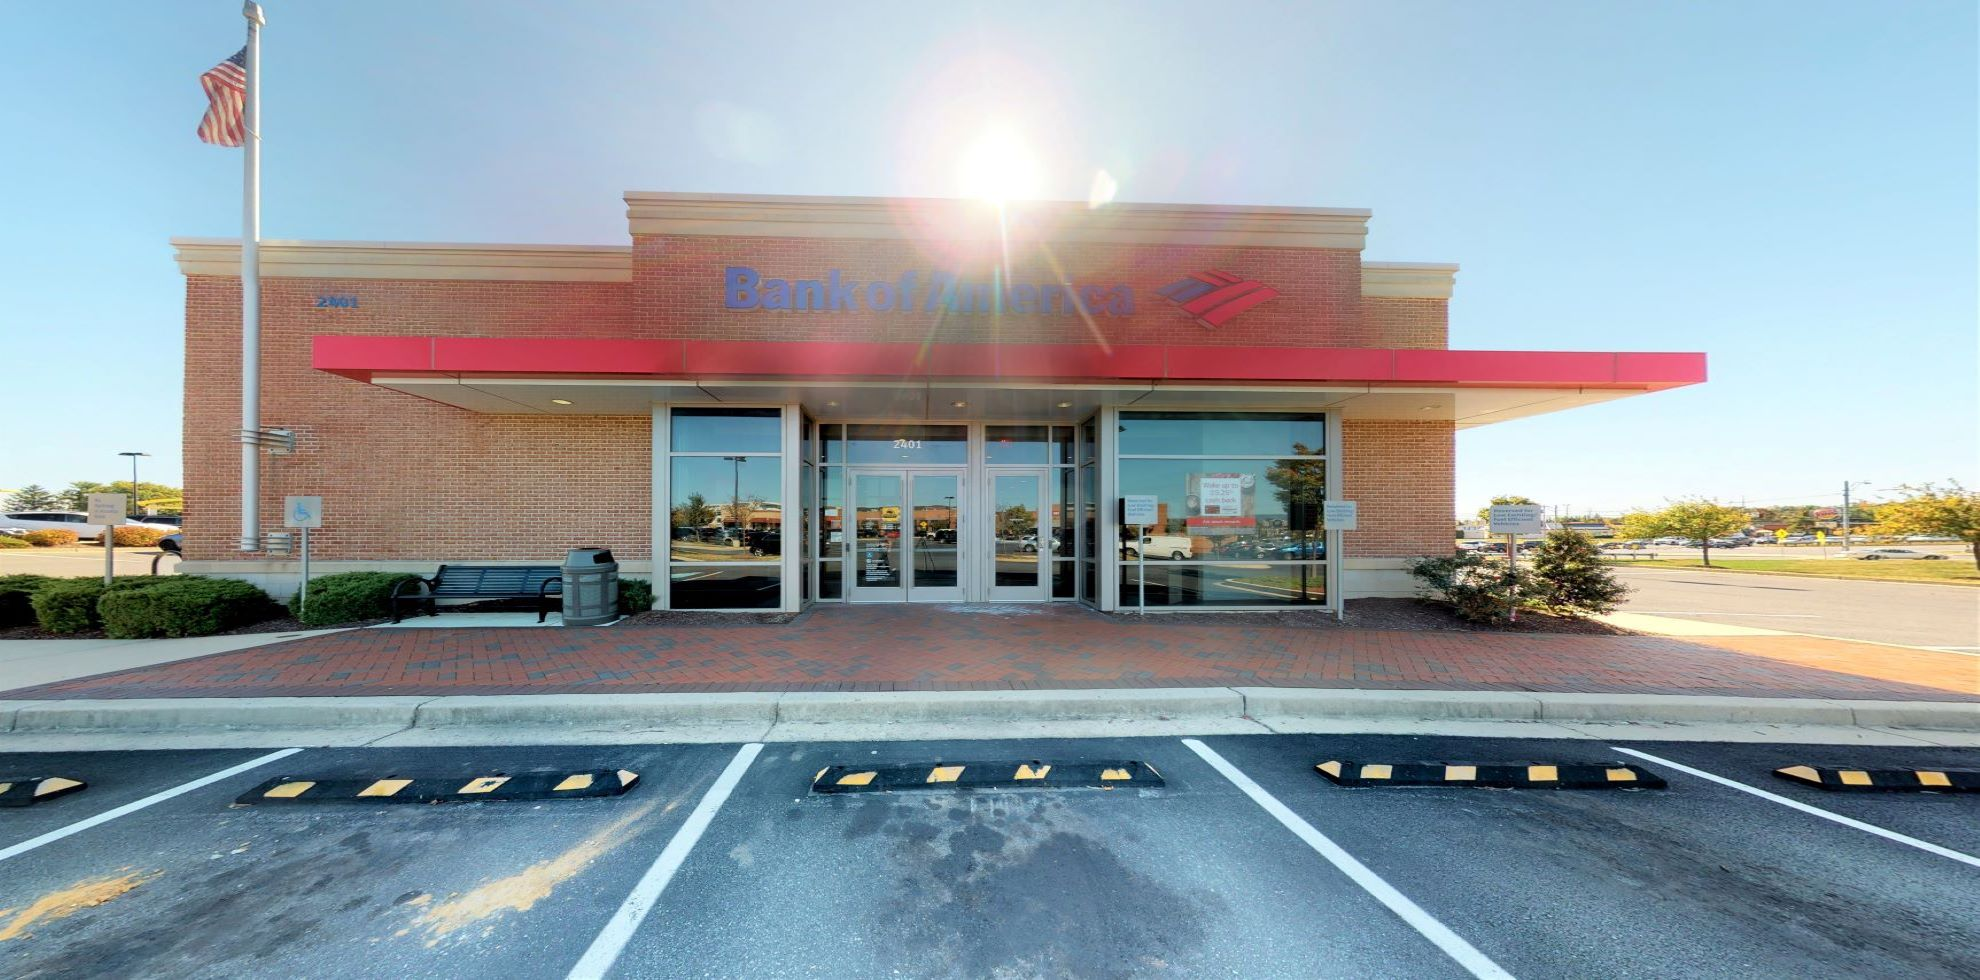 Bank of America financial center with drive-thru ATM | 2401 Osprey Way, Frederick, MD 21701